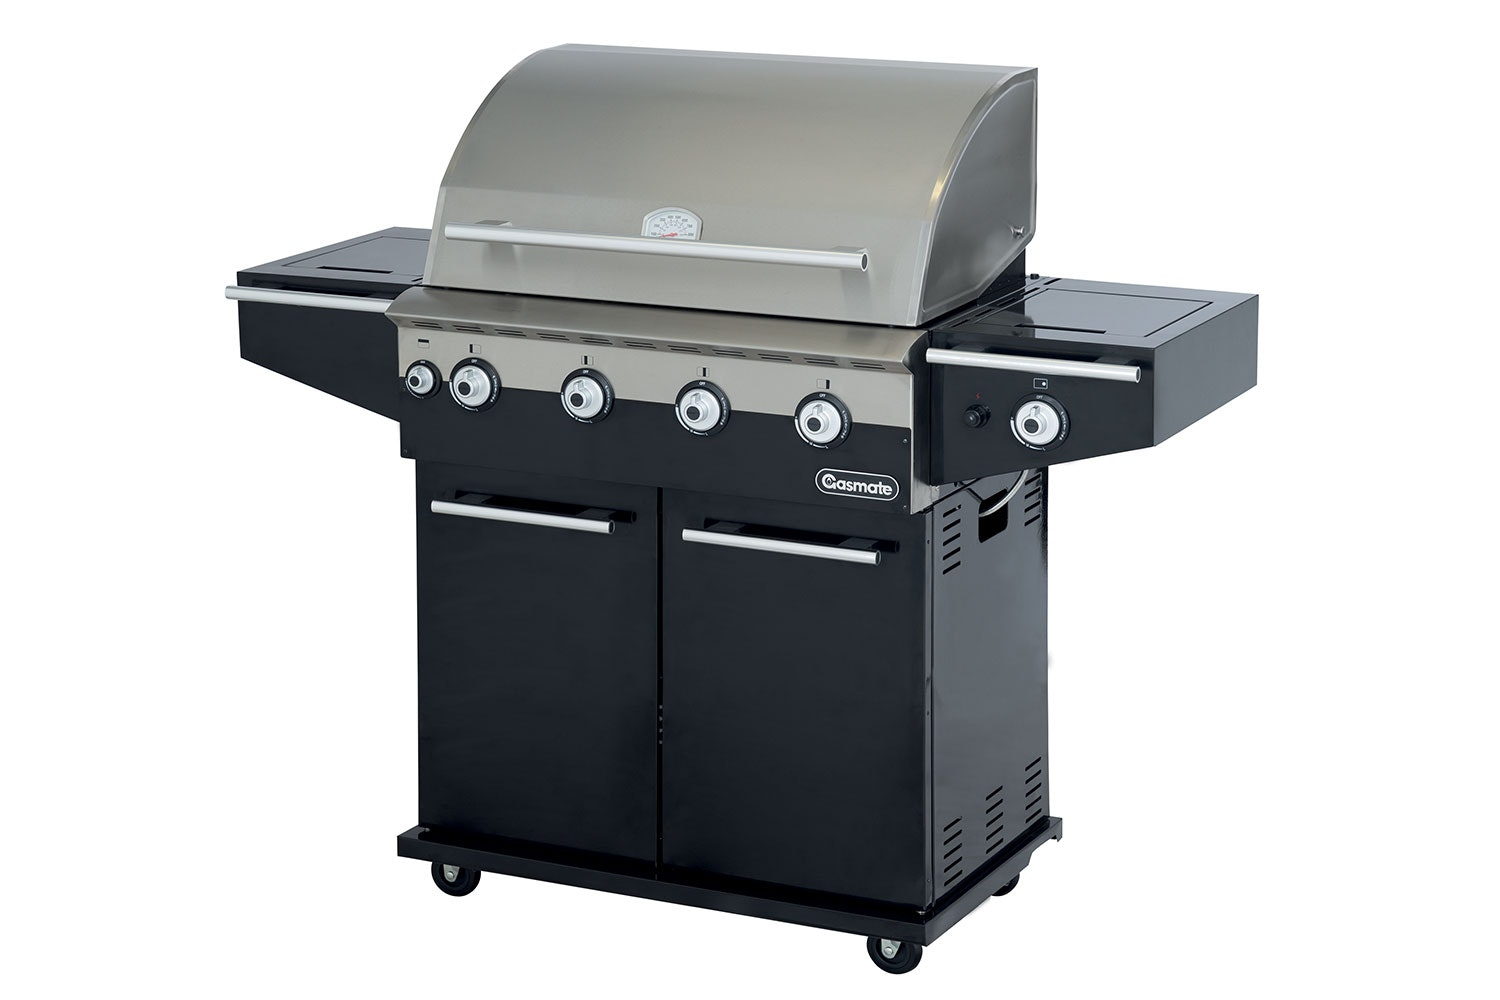 Euro 4 Burner Barbeque by Gasmate